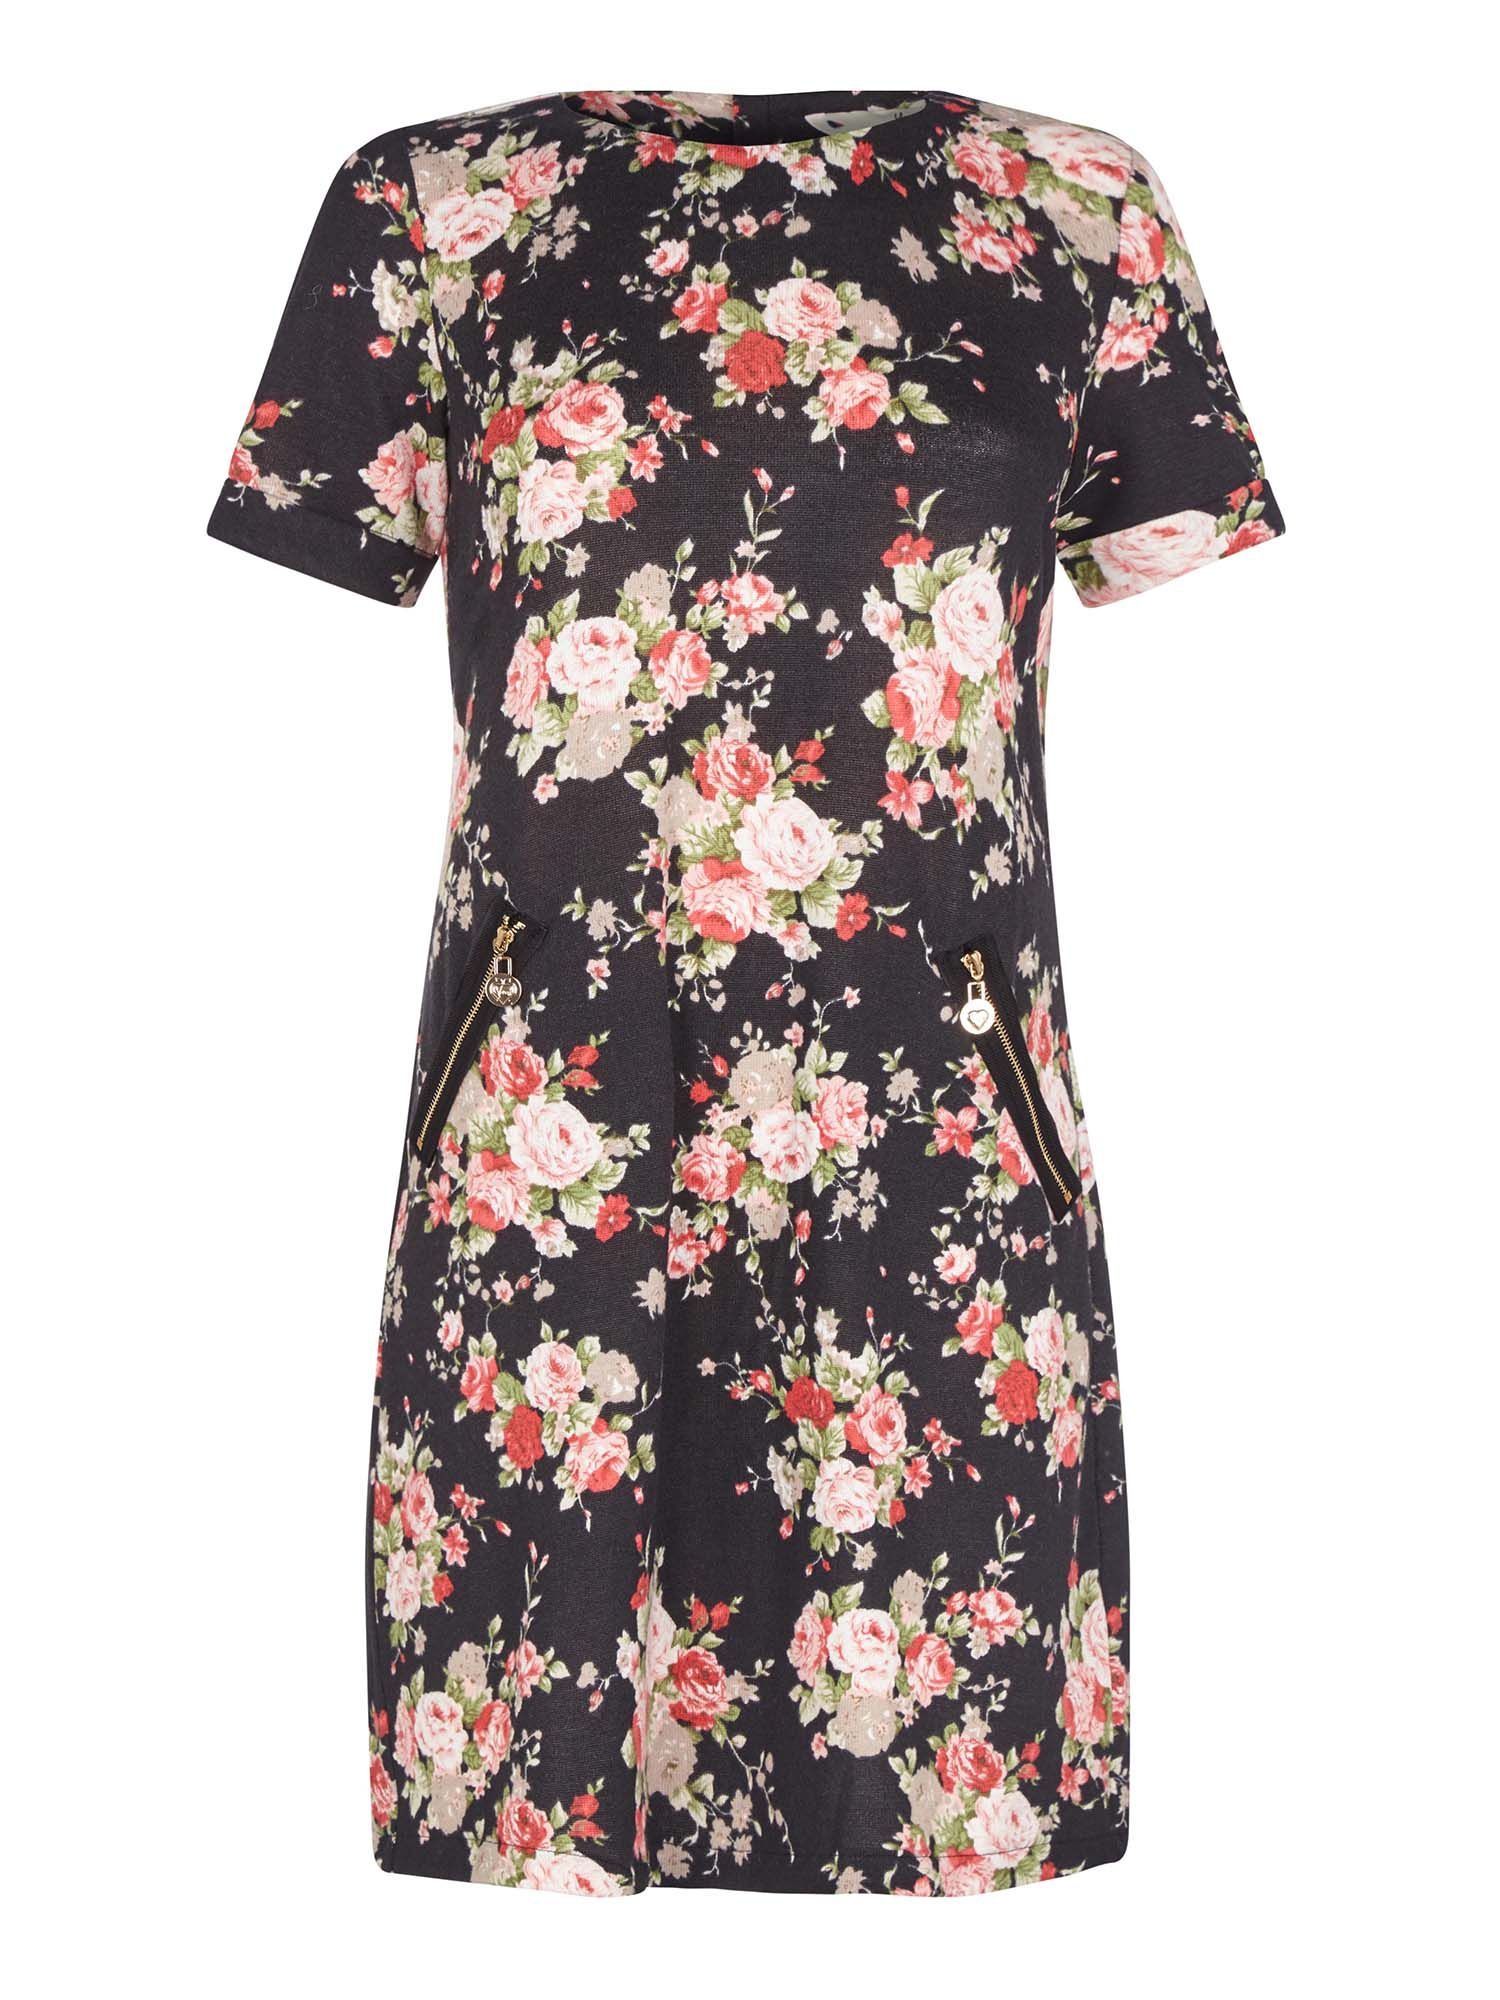 Yumi Floral Print Tunic Dress with Zipped Pockets, Black